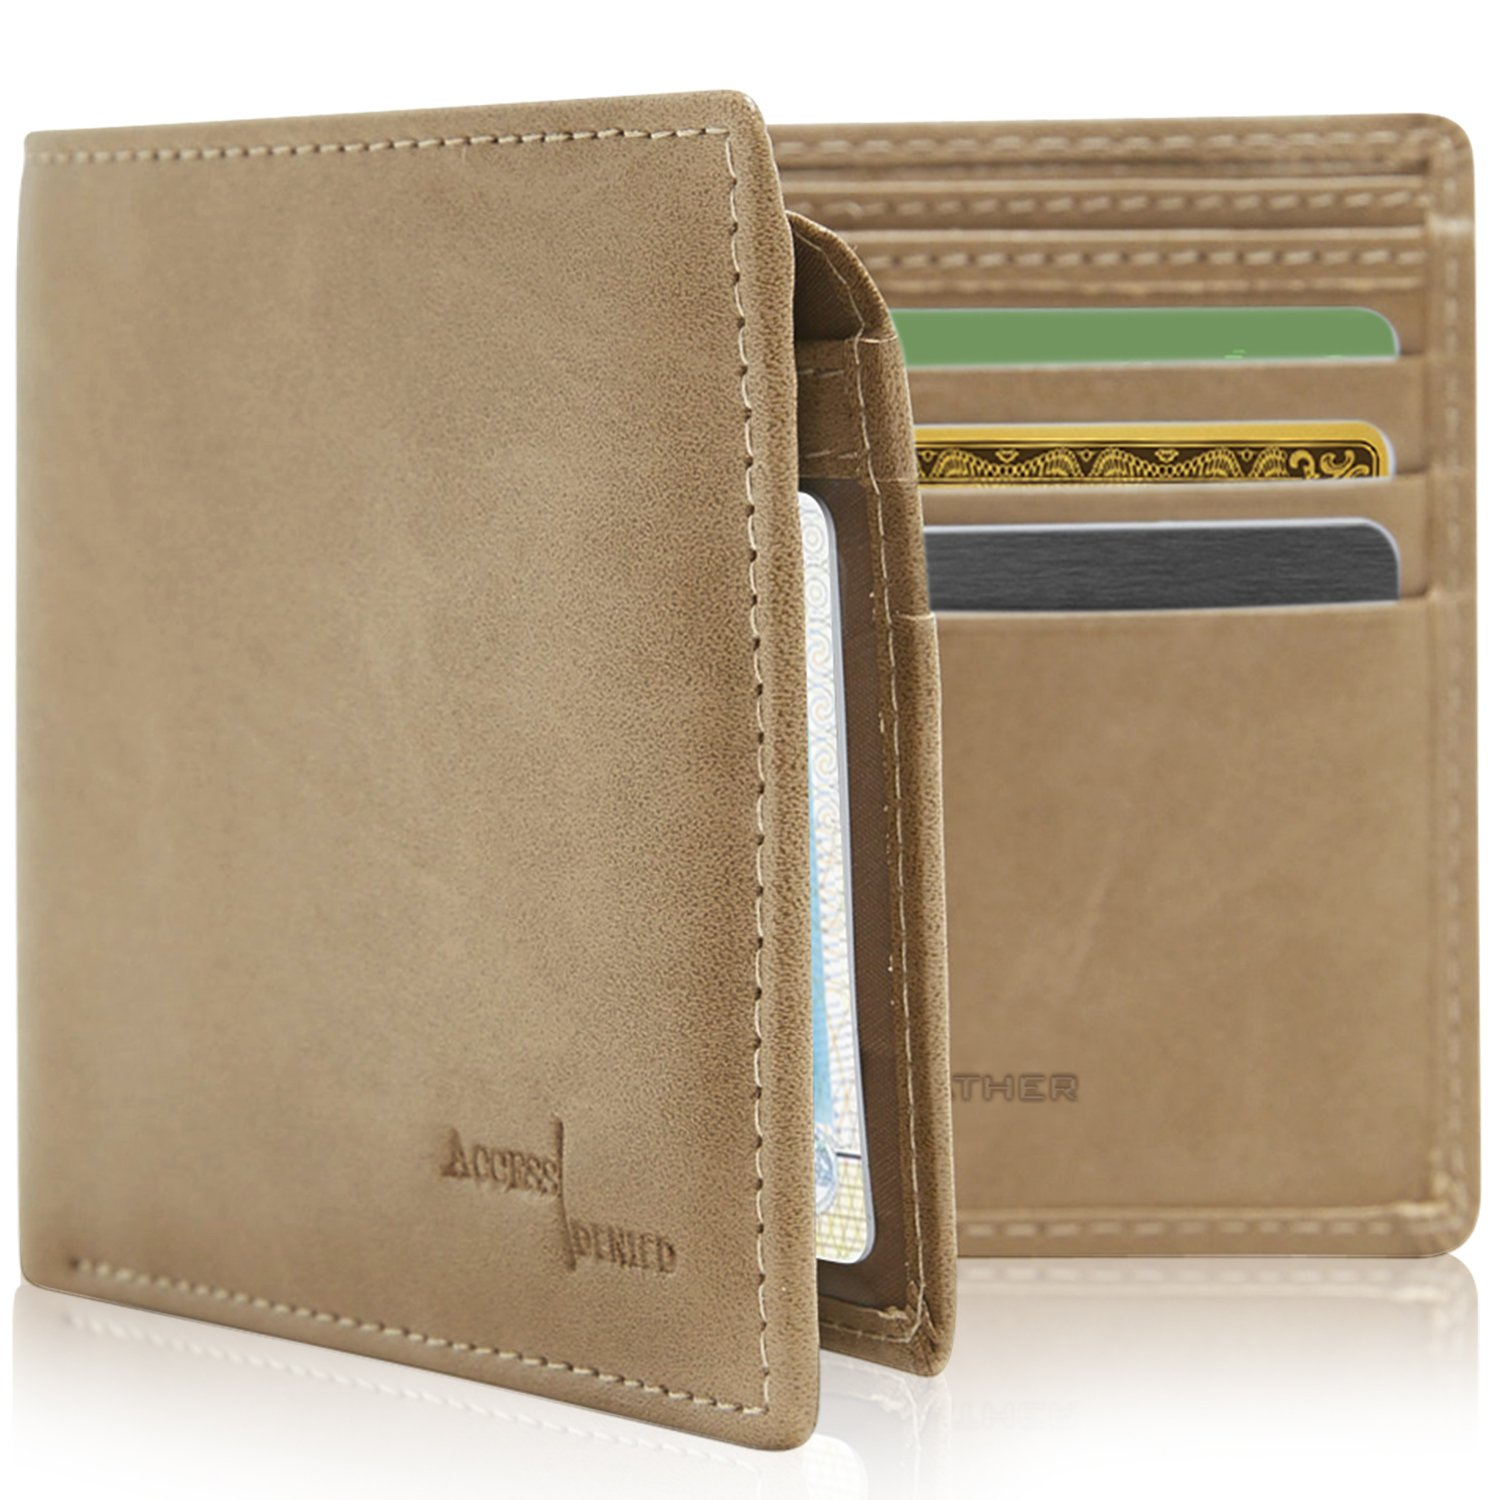 Vegan Leather Wallets For Men - Bifold Mens Wallet RFID Blocking With ID Window Cruelty Free Taupe